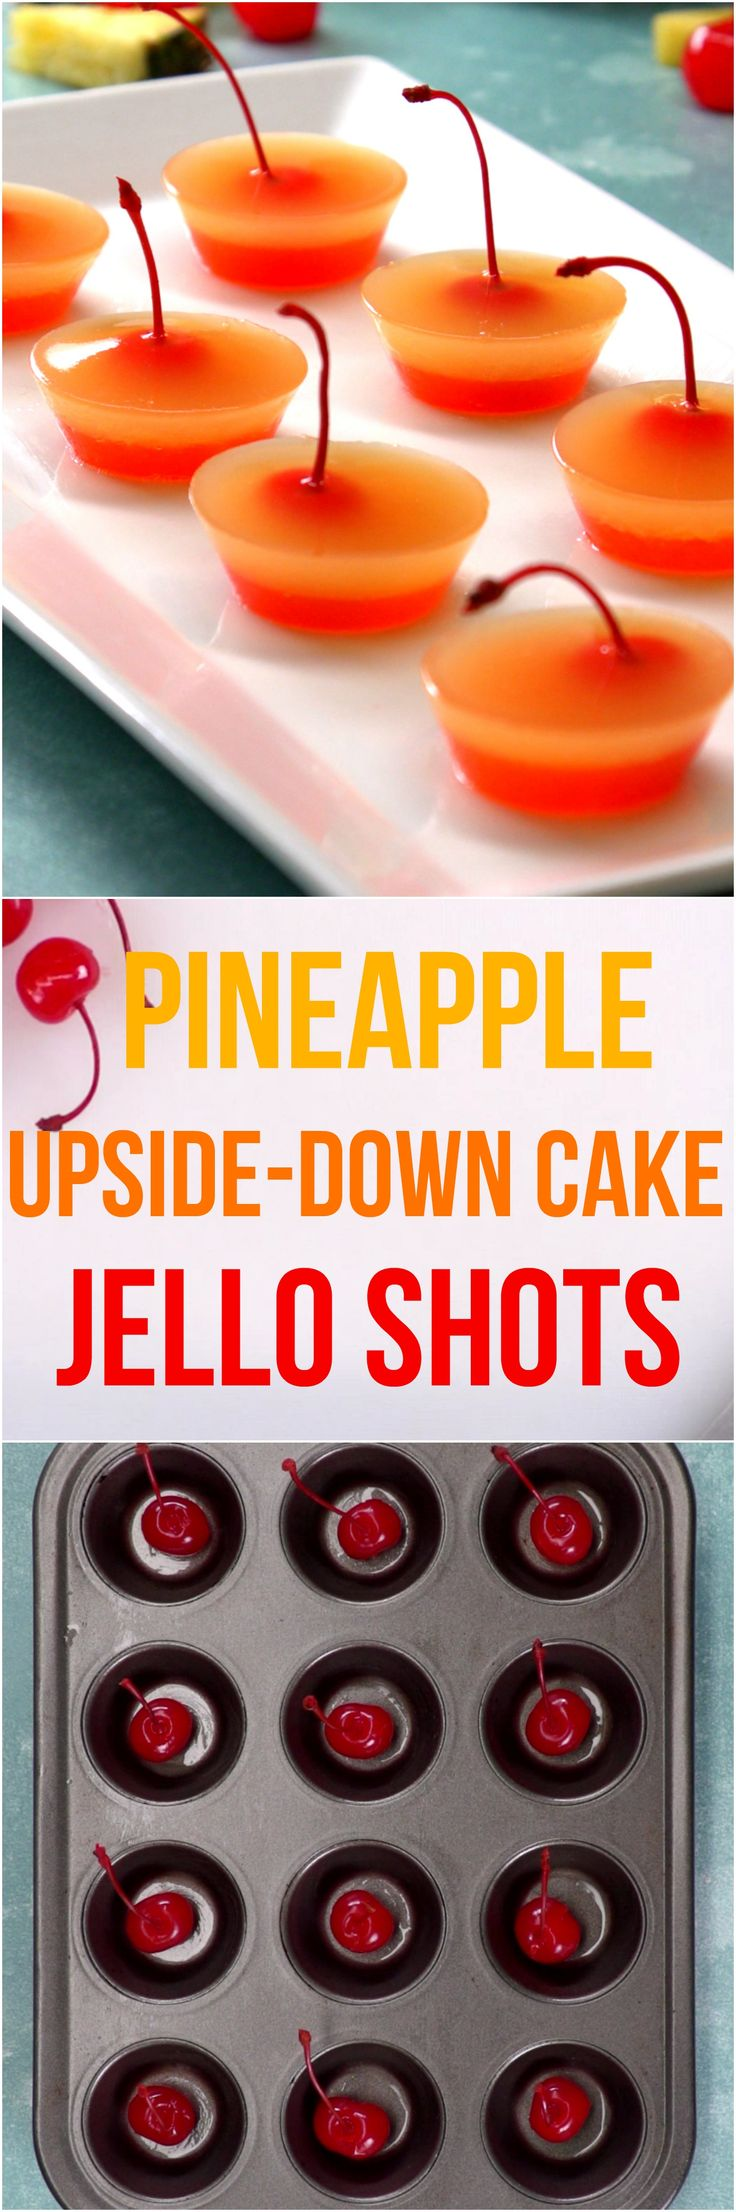 Get jiggly with it at your next party and bring out these stacked pineapple upside-down cake jello shots. (No plastic cups -- these are made in a muffin tin!)